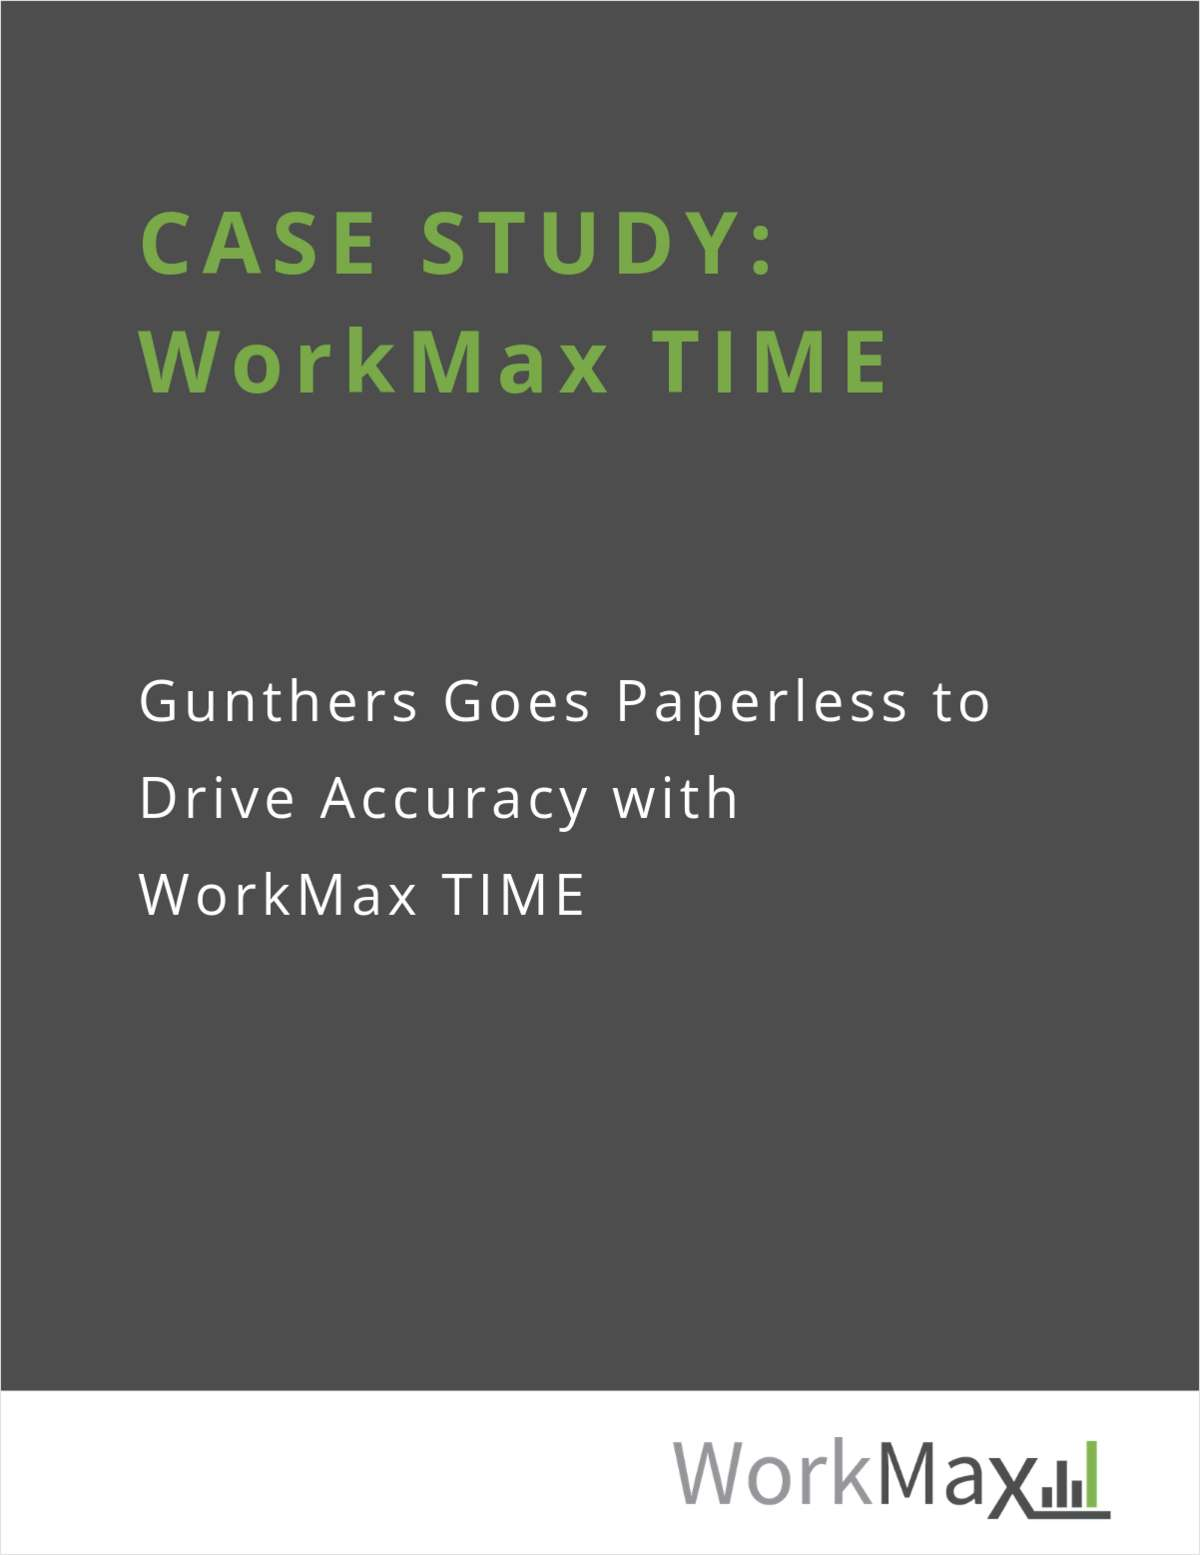 CASE STUDY: Gunthers for WorkMax TIME